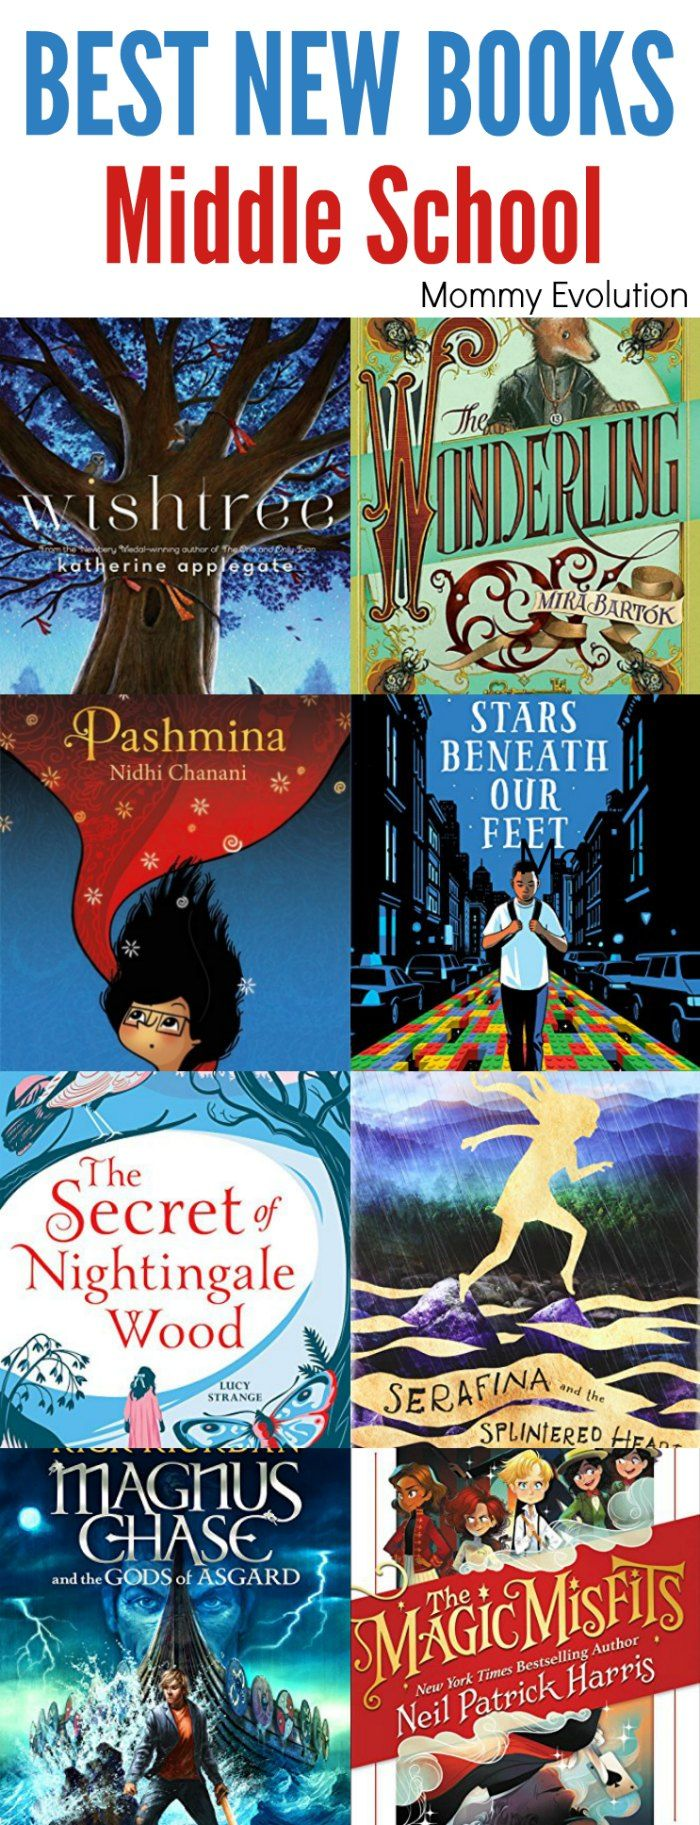 BEST NEW MIDDLE SCHOOL BOOKS TO READ THIS YEAR - For kids ages 9-12 | Mommy Evolution #kidlit #chapterbooks #reading #middleschool #books